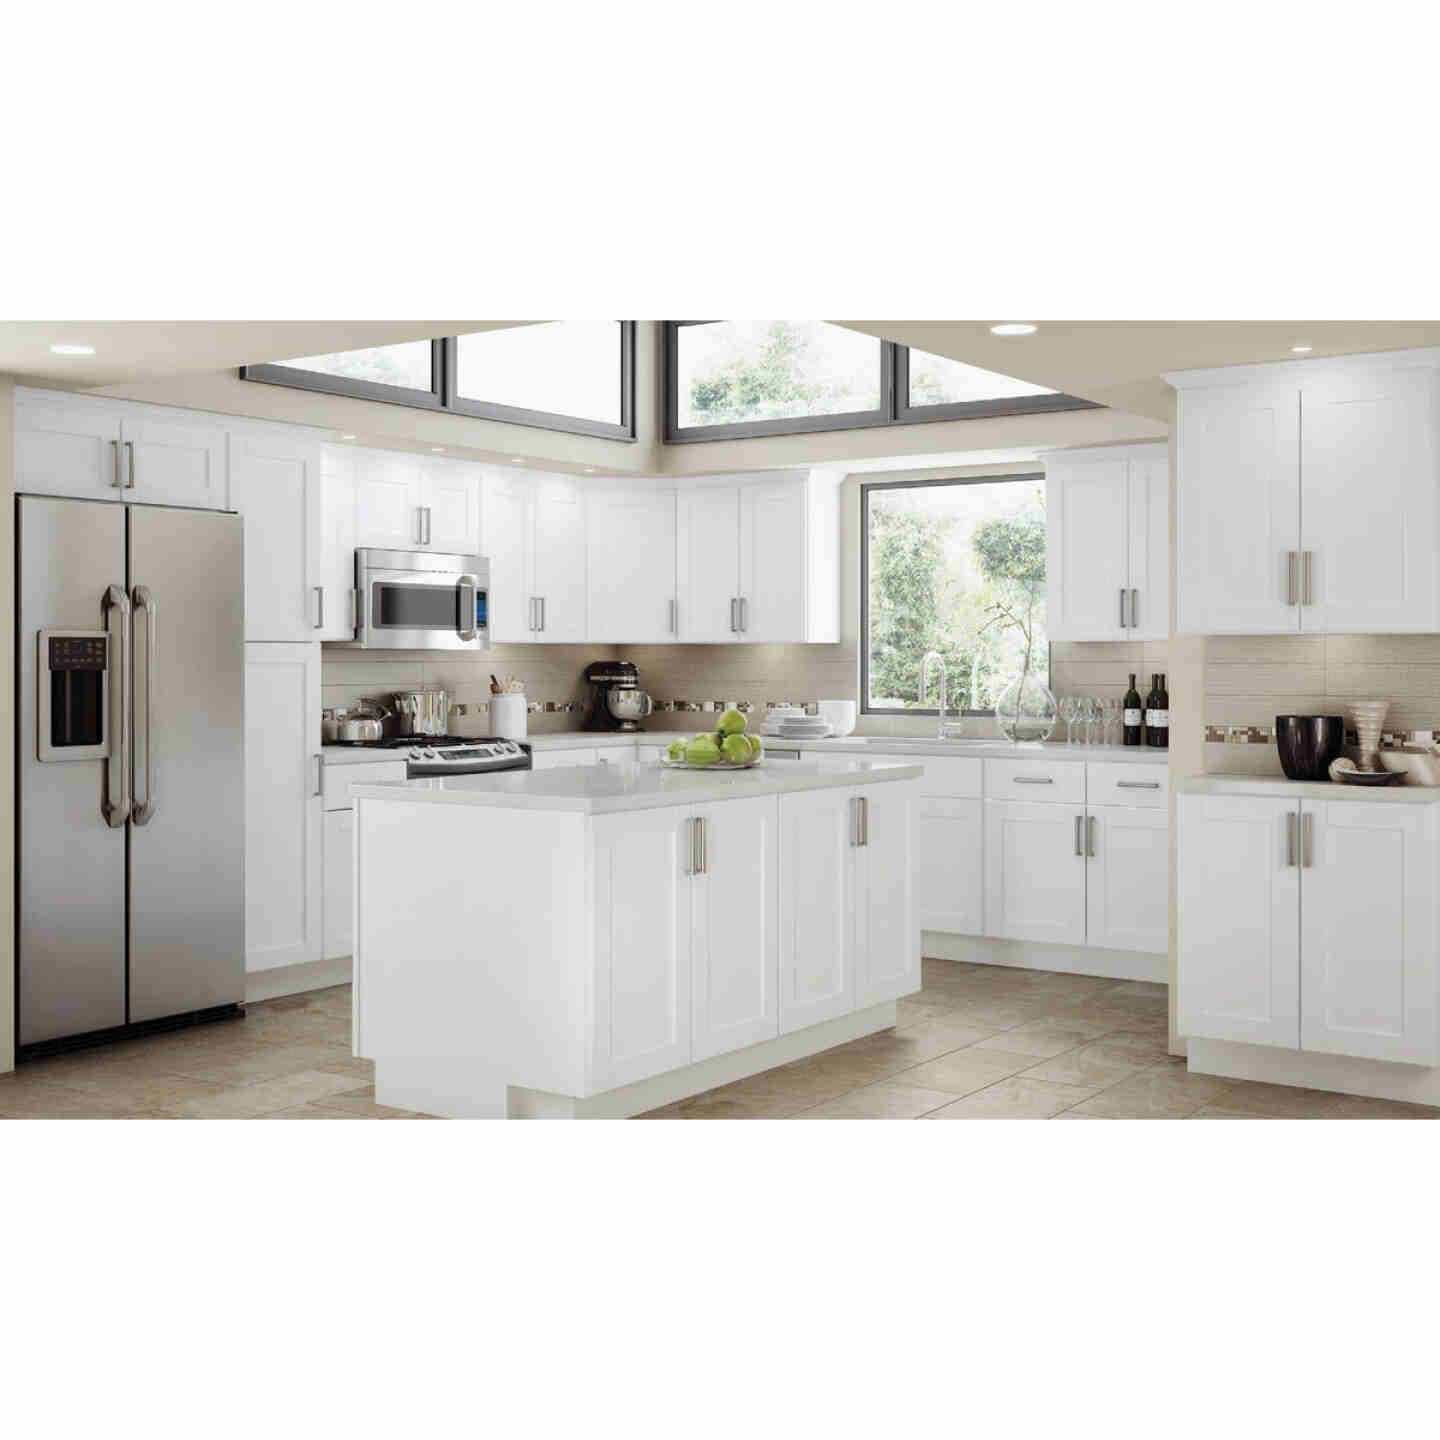 Continental Cabinets Andover Shaker 18 In. W x 34-1/2 In. H x 24 In. D White Thermofoil Kitchen Cabinet Drawer Base Image 2